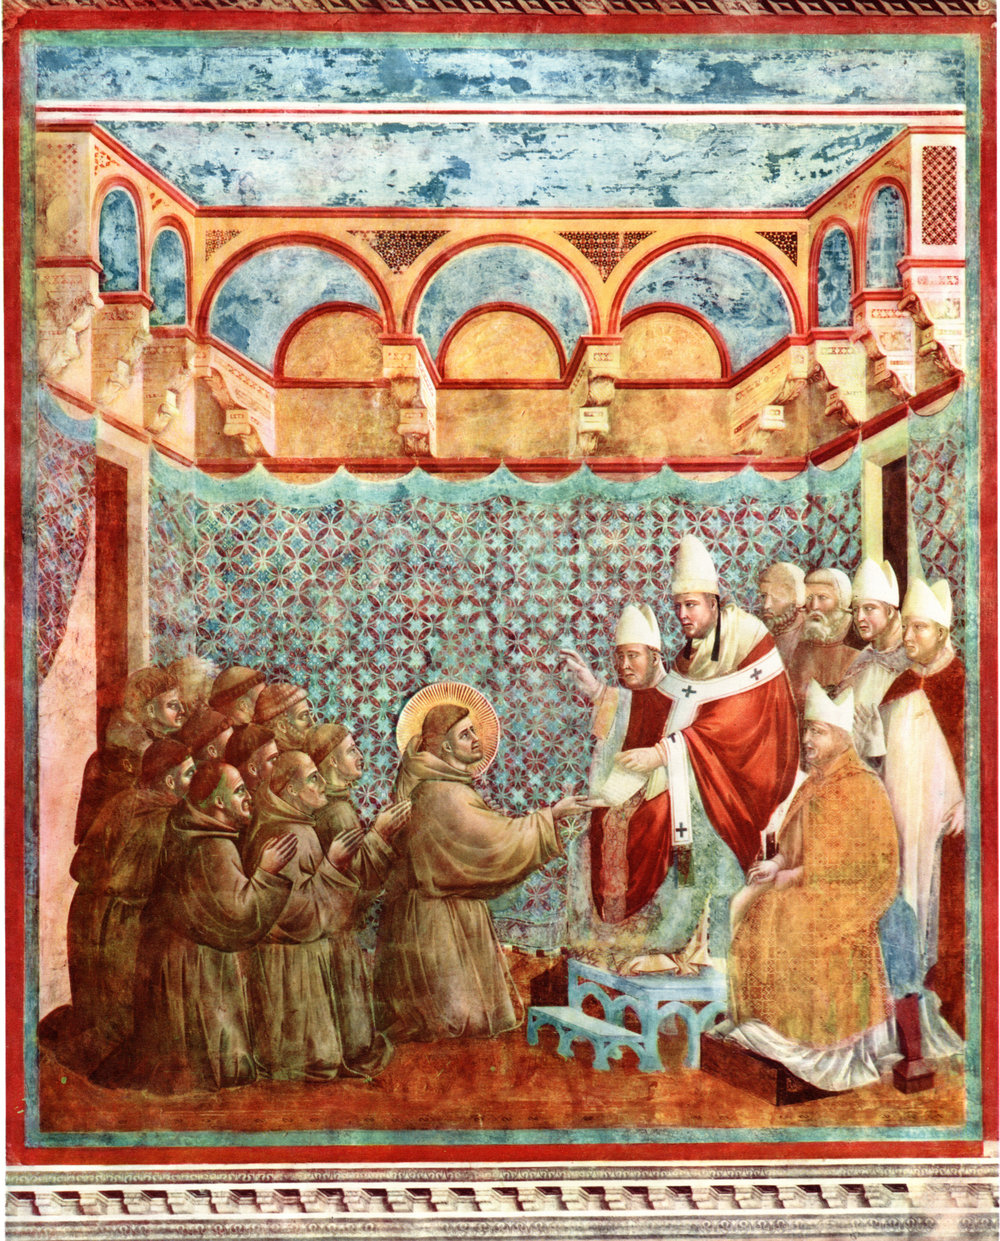 Giotto's Frescoes of Assisi (circa 1890)